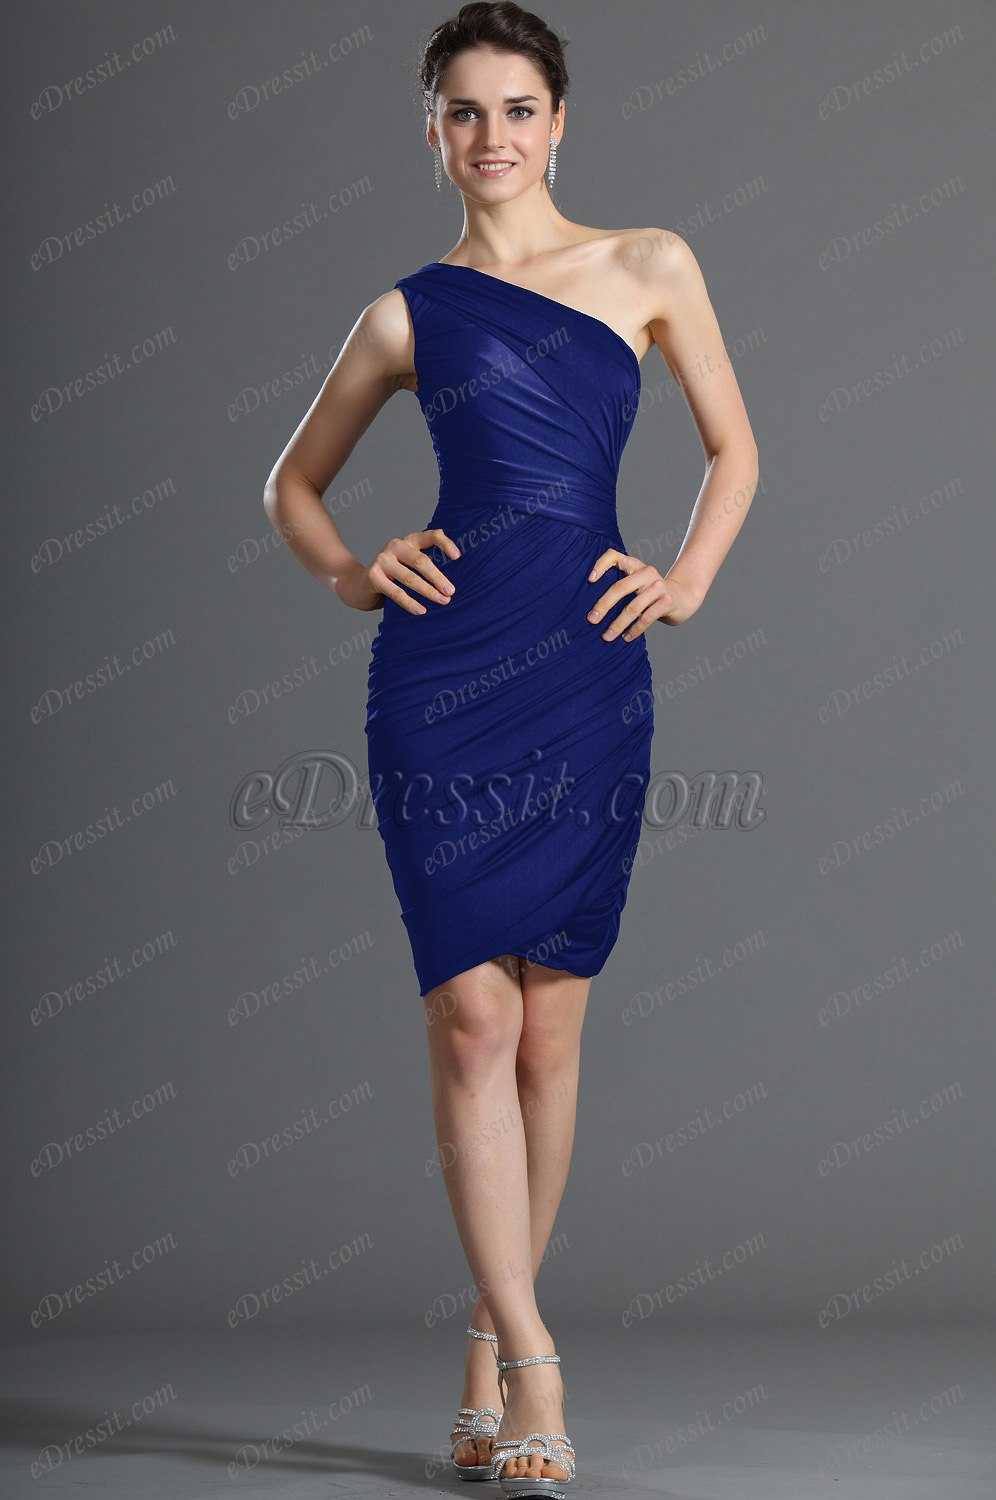 Clearance Sale !eDressit One Shoulder Cocktail Dress Party Dress (03120500B)